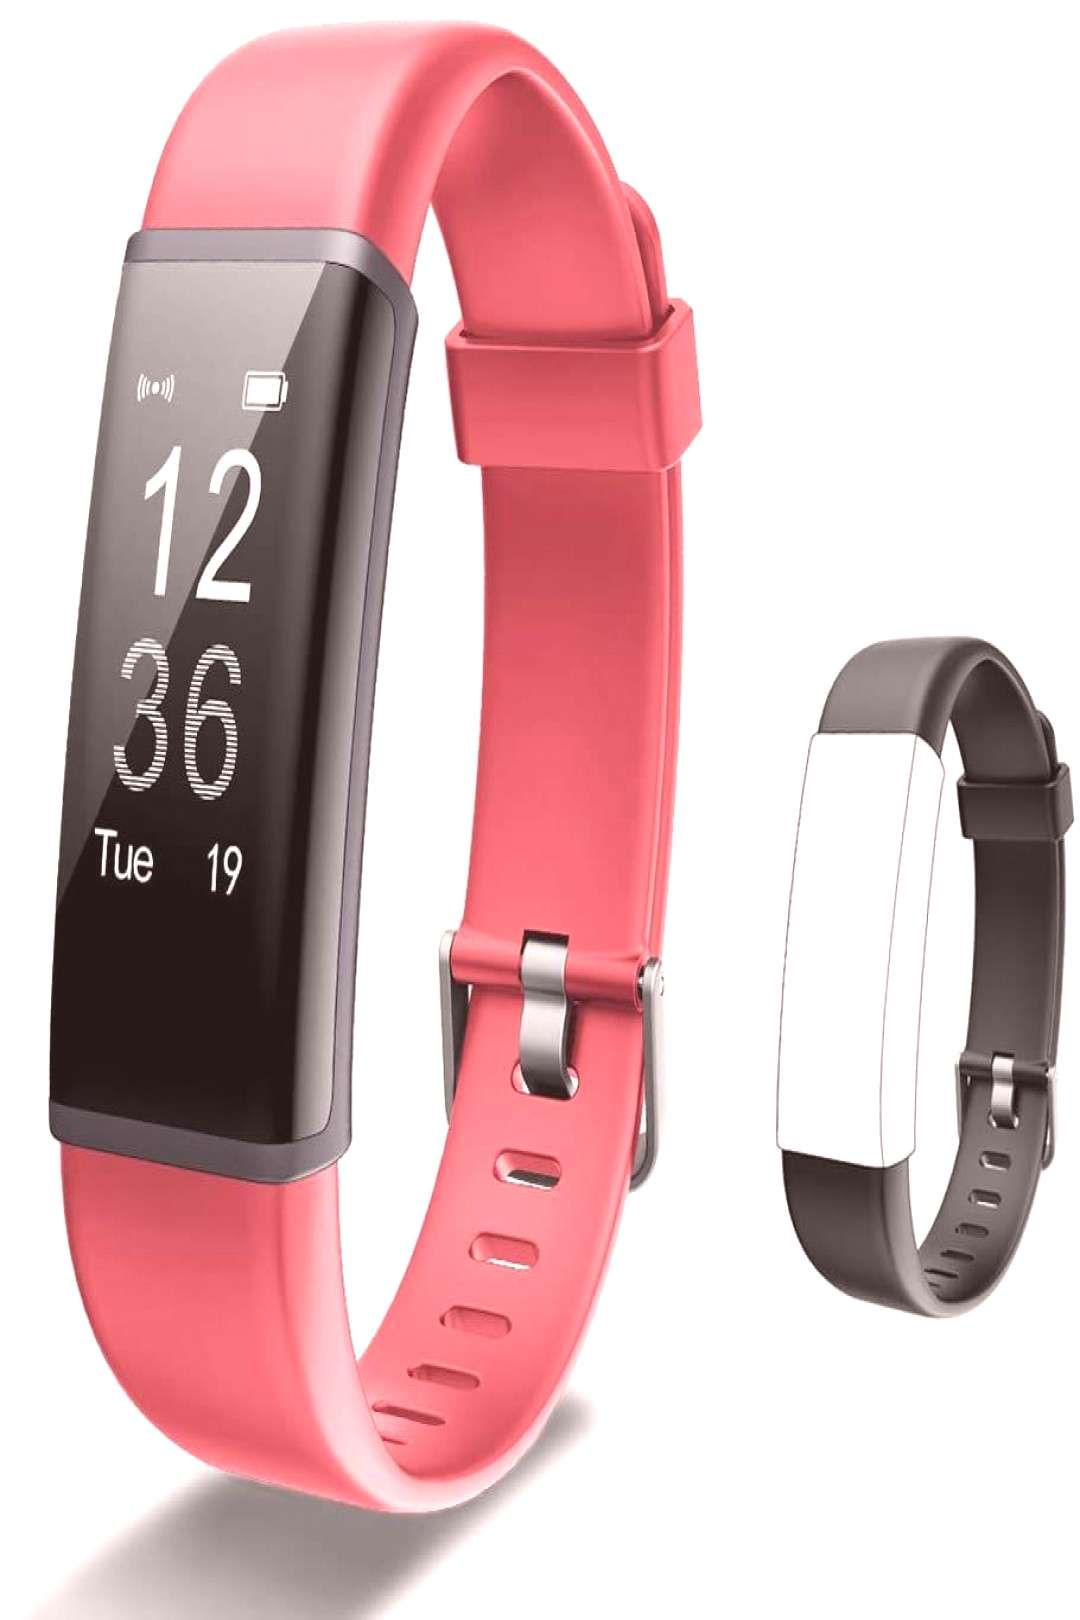 10 Cheap Fitness Trackers With Heart Rate Monitor To Get in 2020 10 Cheap Fitness Trackers With Hea